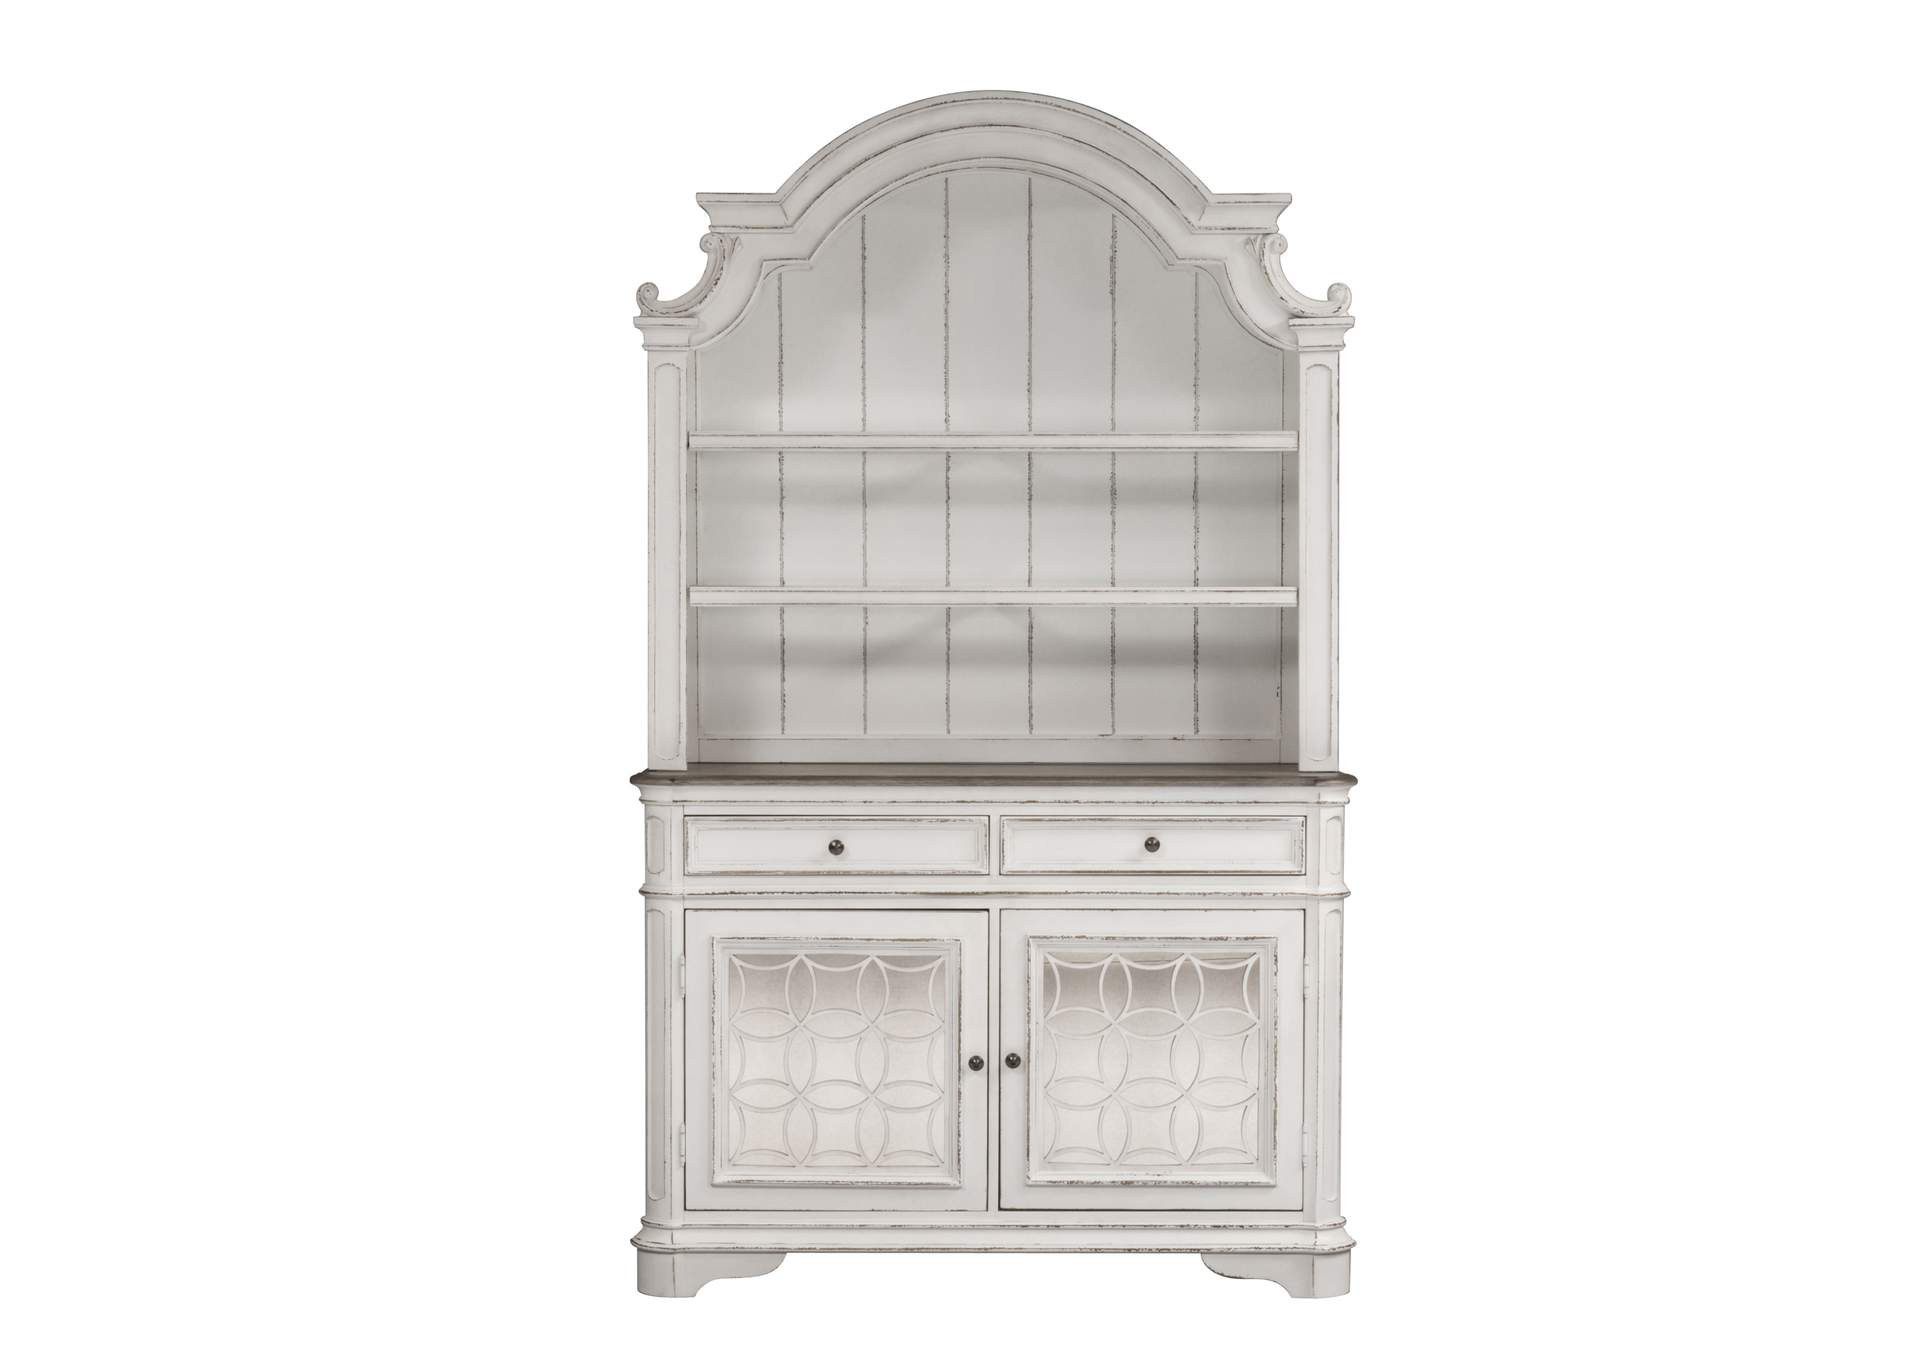 Magnolia Manor White China Cabinet,Liberty